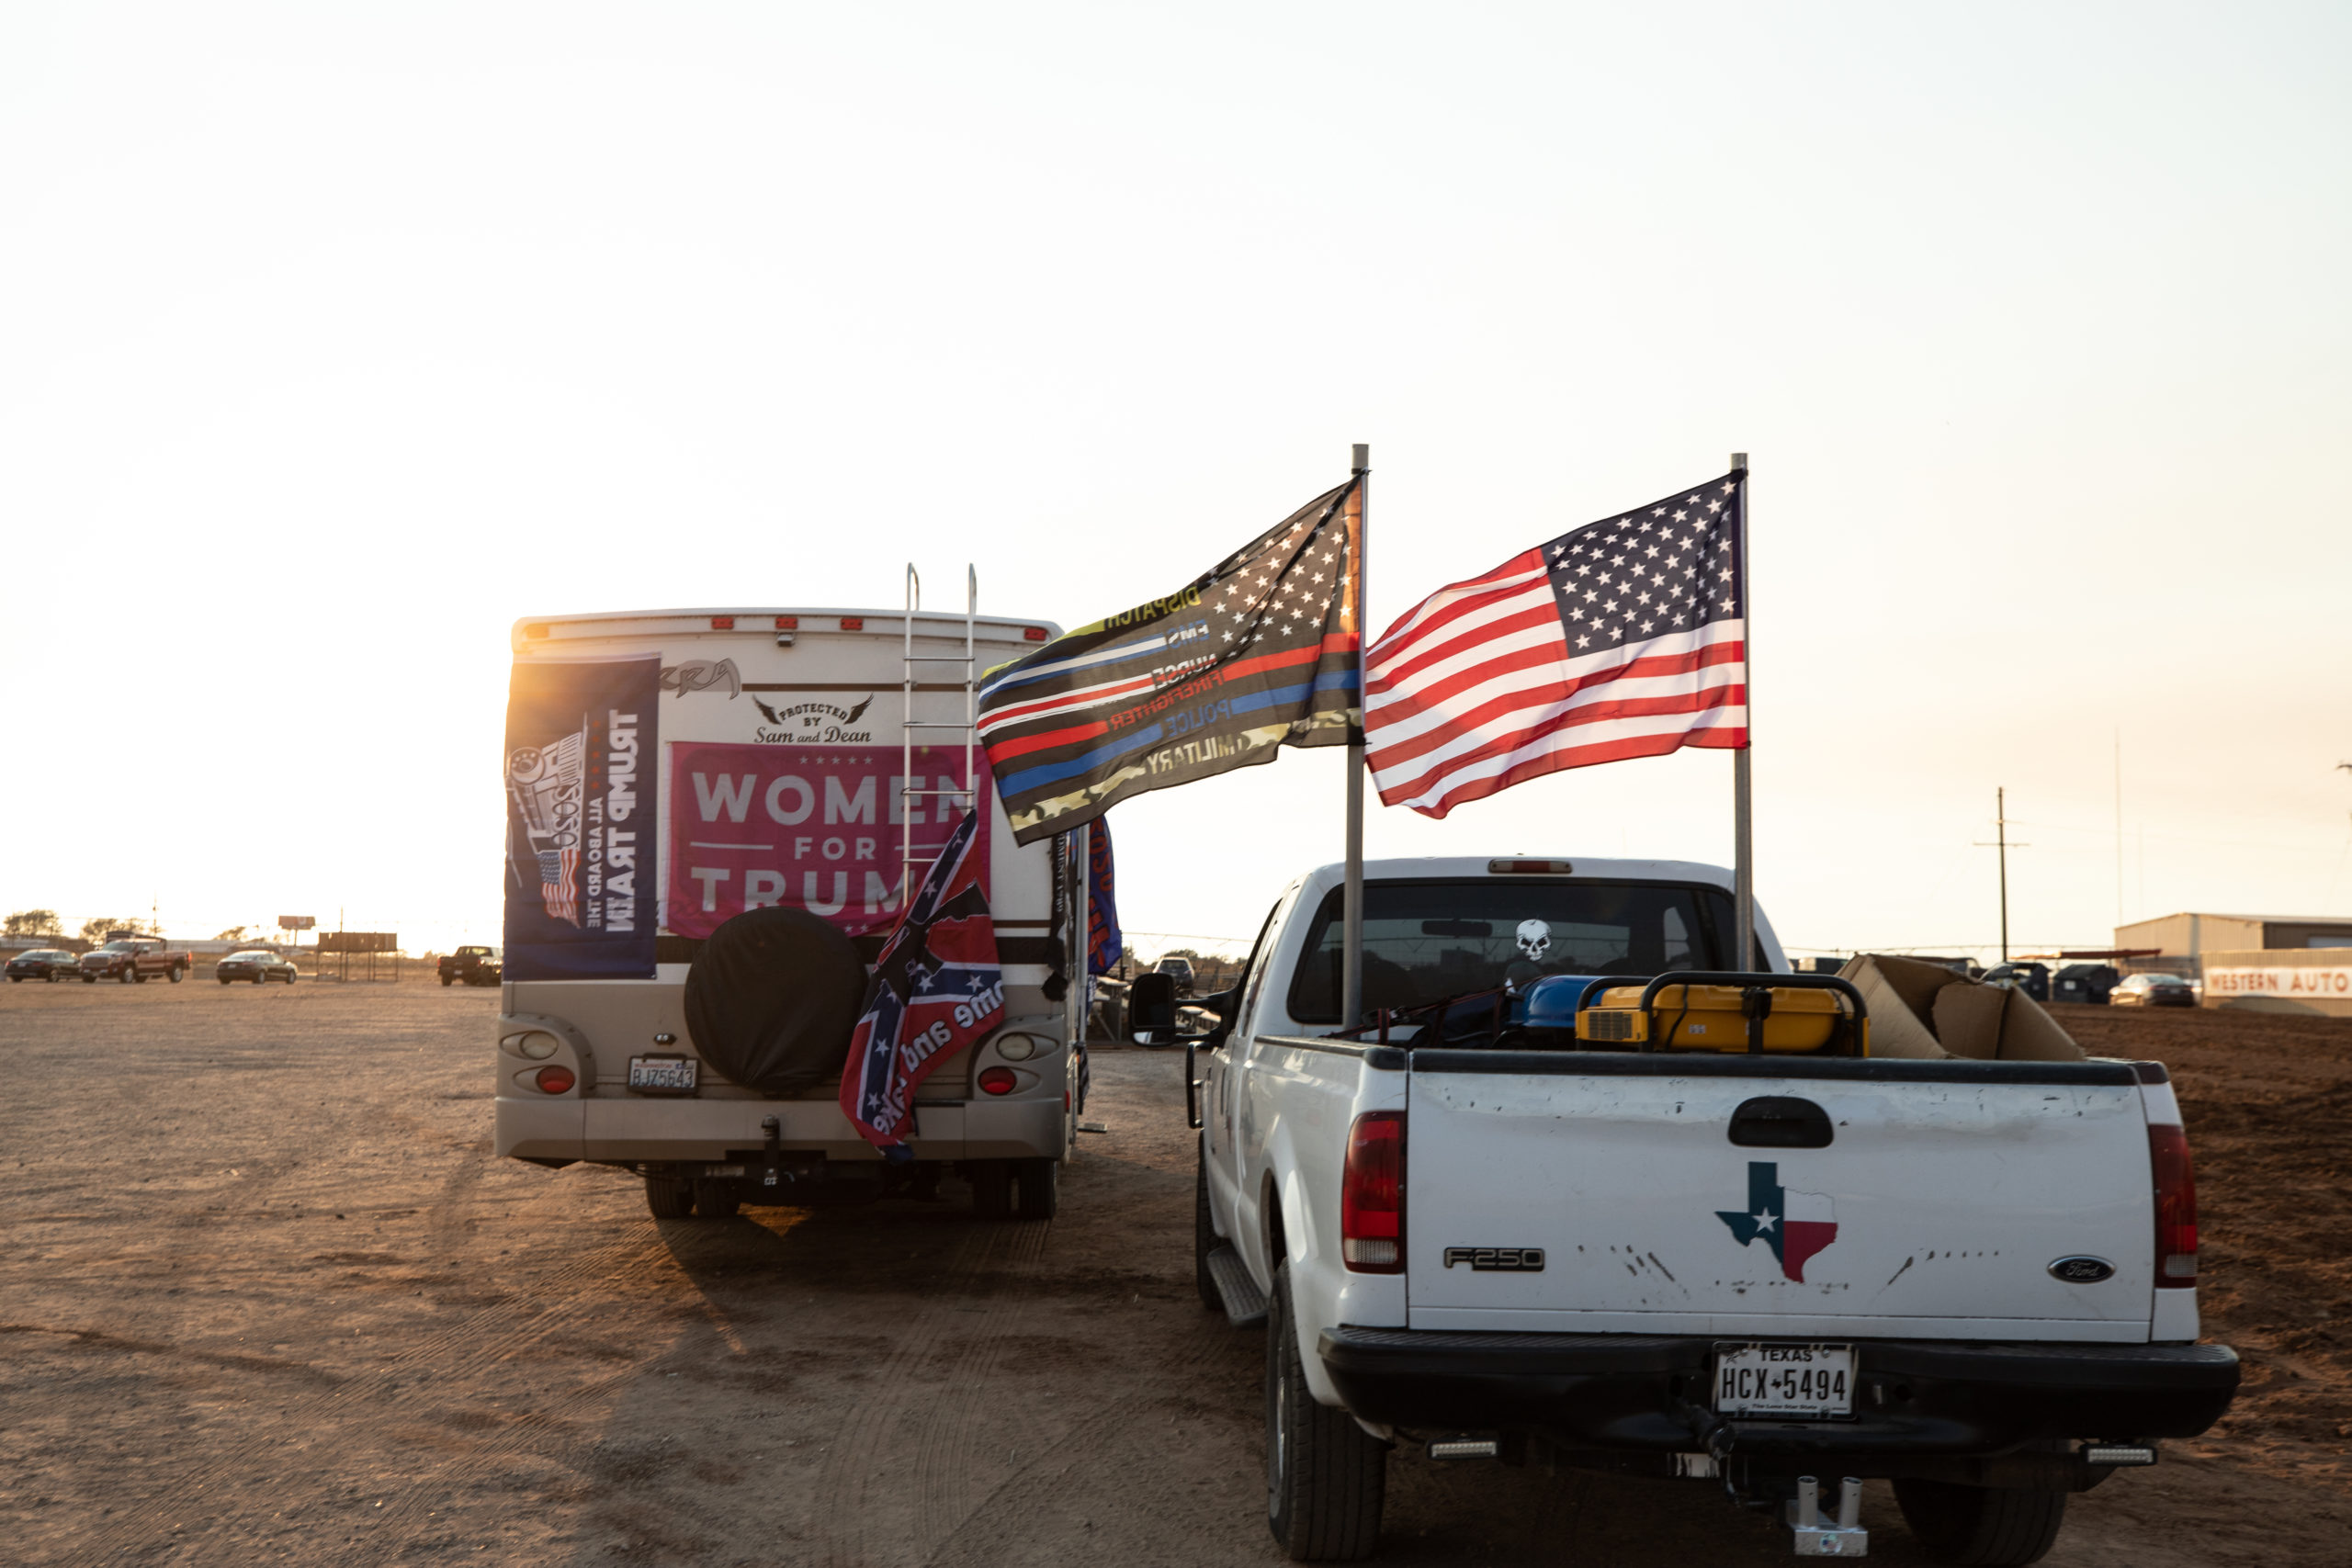 """A truck and camper remained at Cook's Garage after a """"Trump Train"""" car parade in Lubbock, Texas, on Sunday, Oct. 18, 2020. (Kaylee Greenlee - DCNF)"""